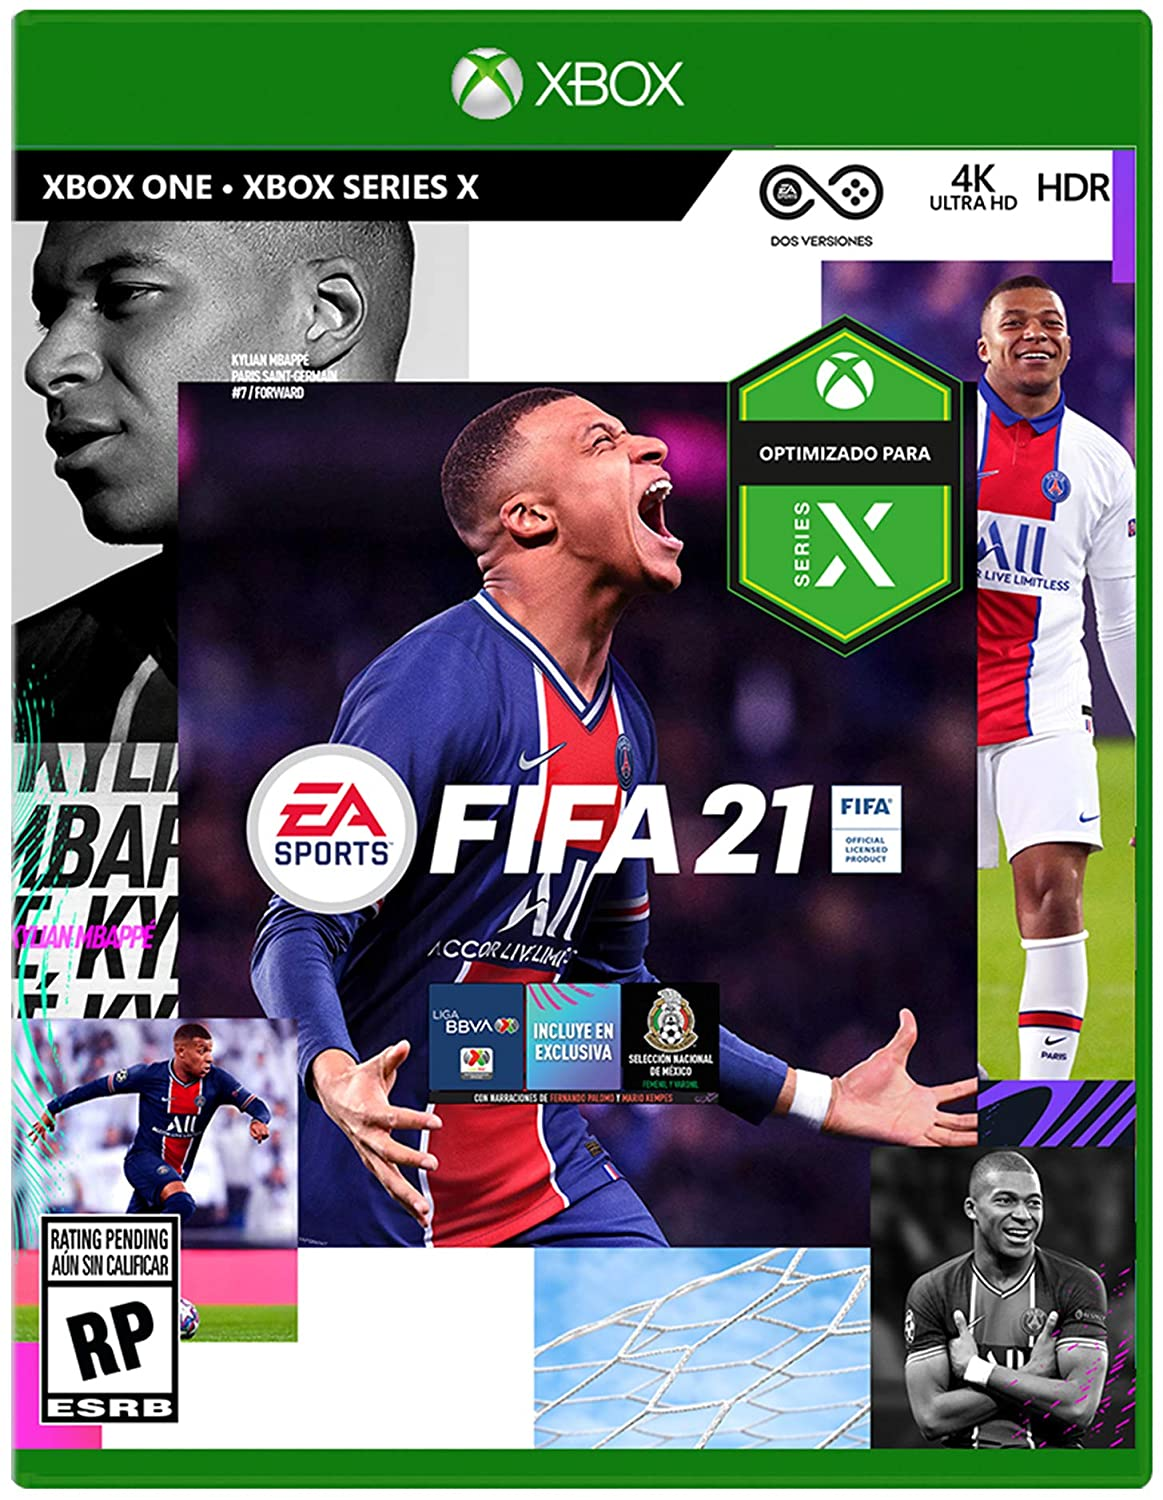 FIFA 21 con descuento por Black Friday en Amazon